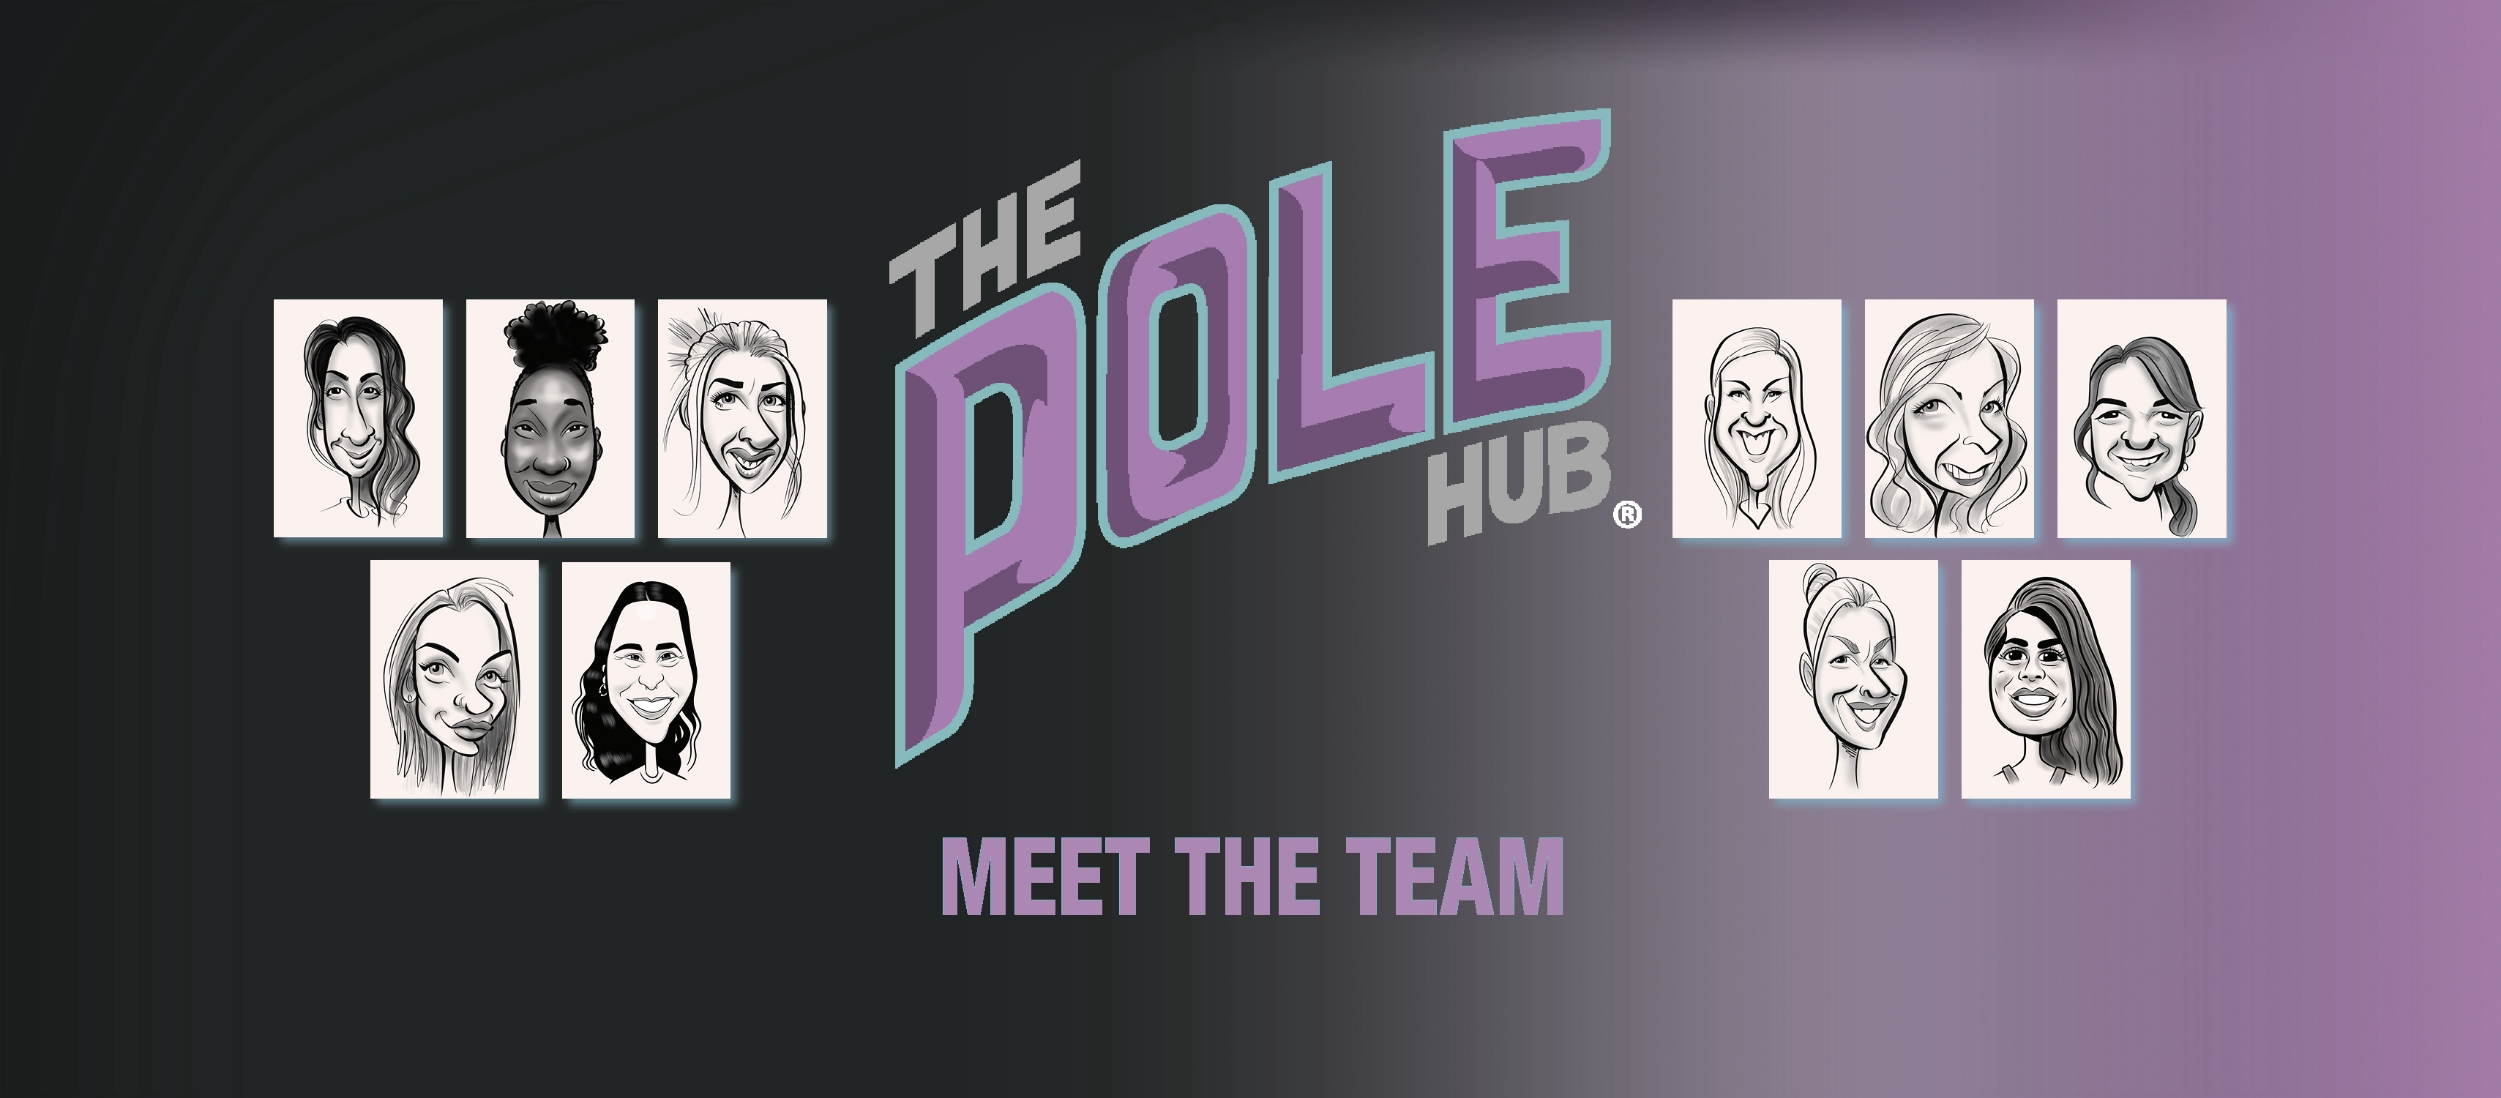 The Pole Hub - Meet the team